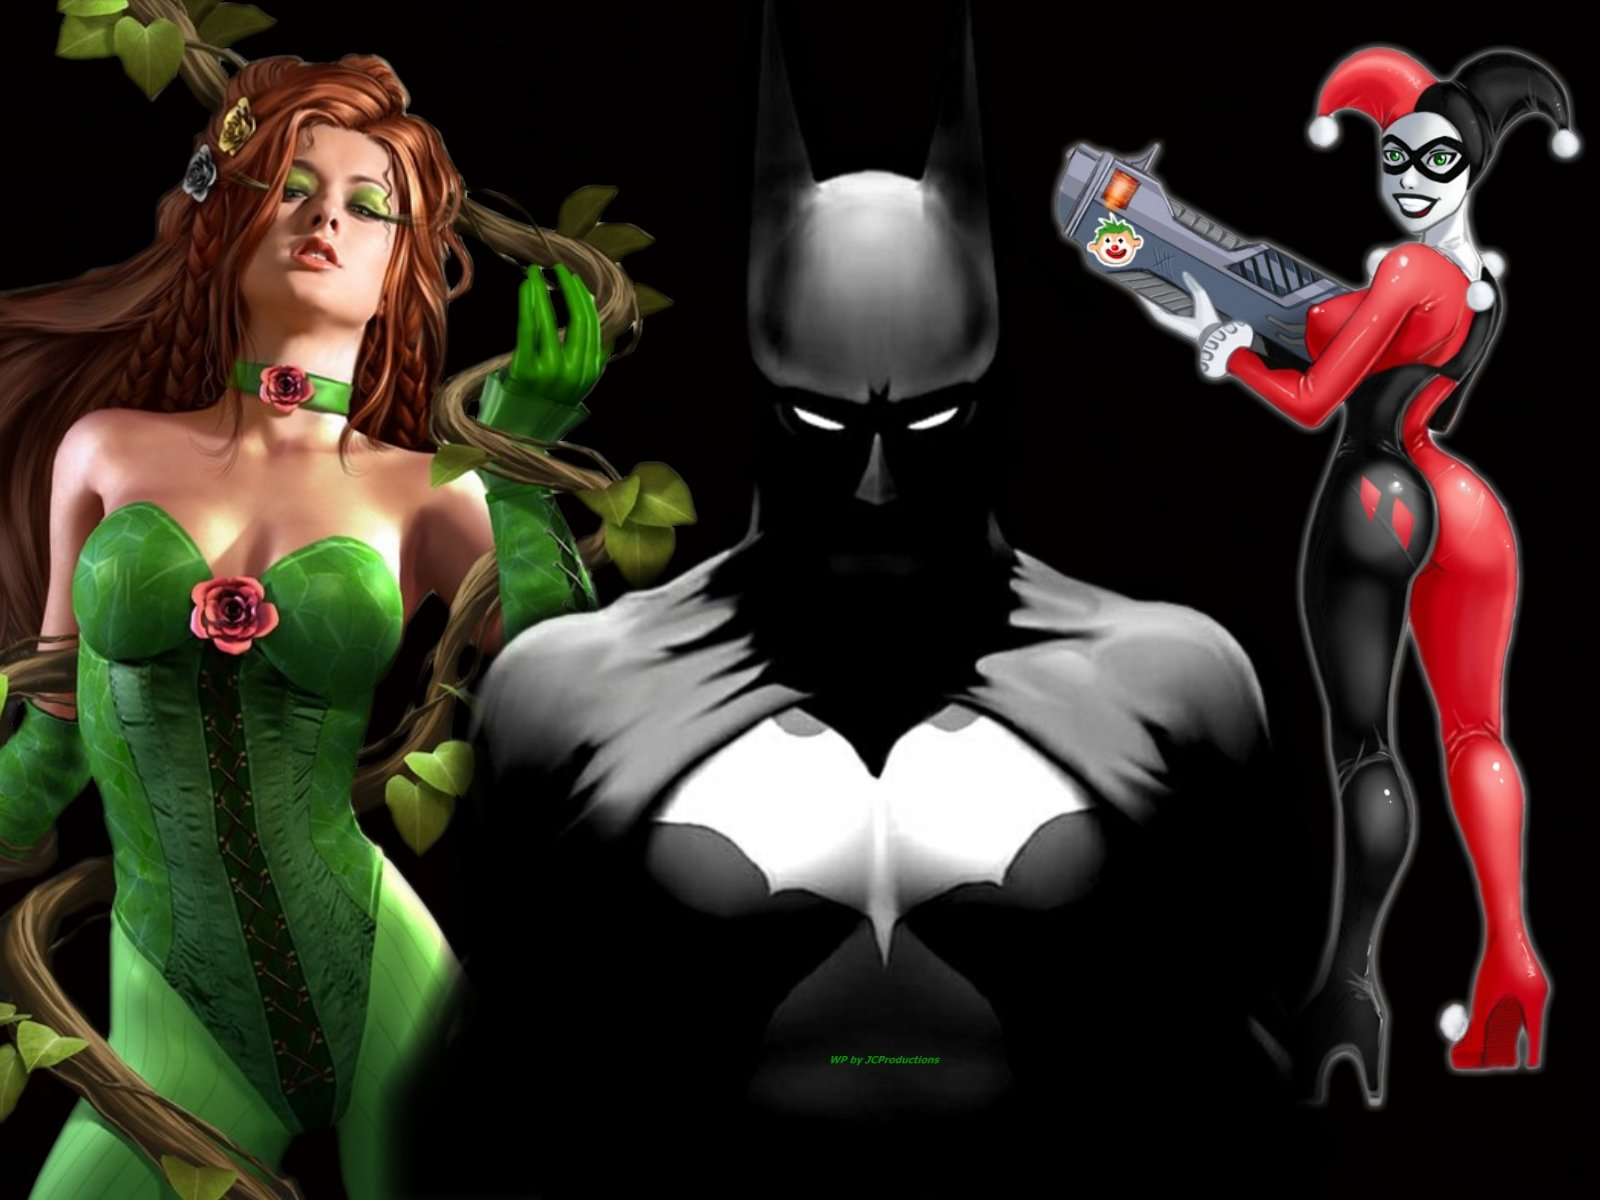 48 Sexy Poison Ivy Wallpaper On Wallpapersafari